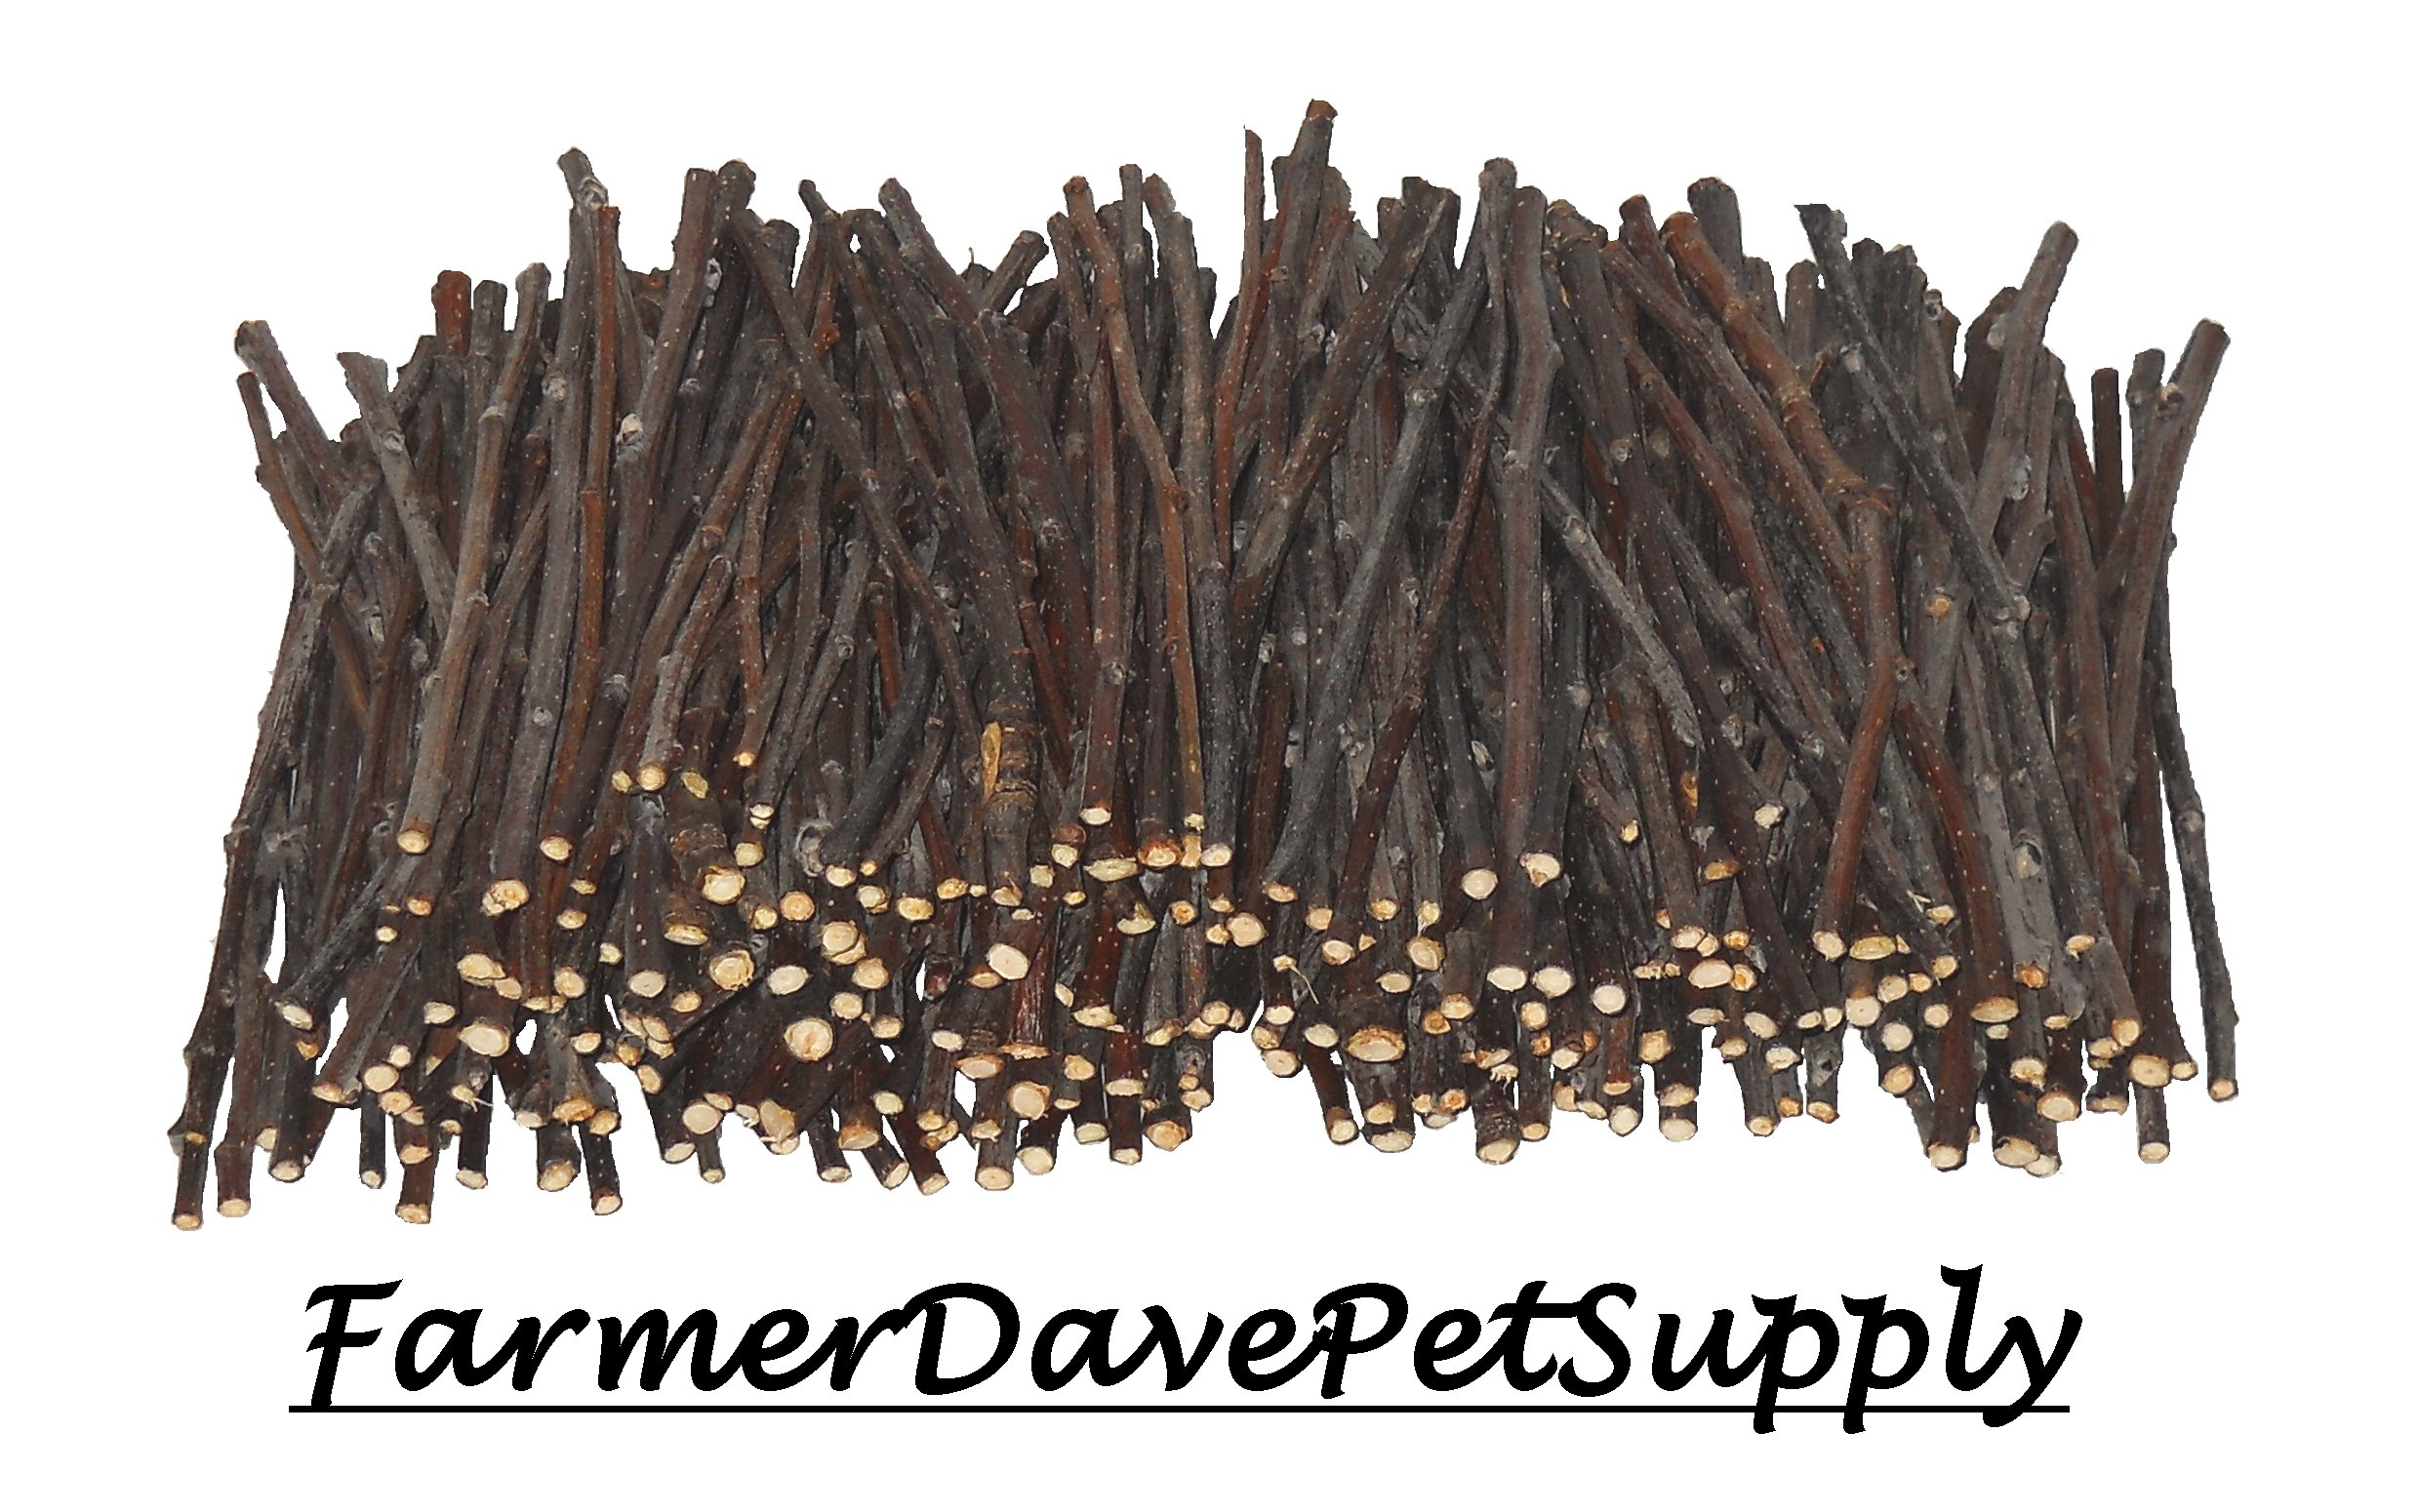 FarmerDavePetSupply 250 Apple Skinny Twig Chews for Rabbits, Guinea Pigs, Chinchillas and Other Small Animals by FarmerDavePetSupply